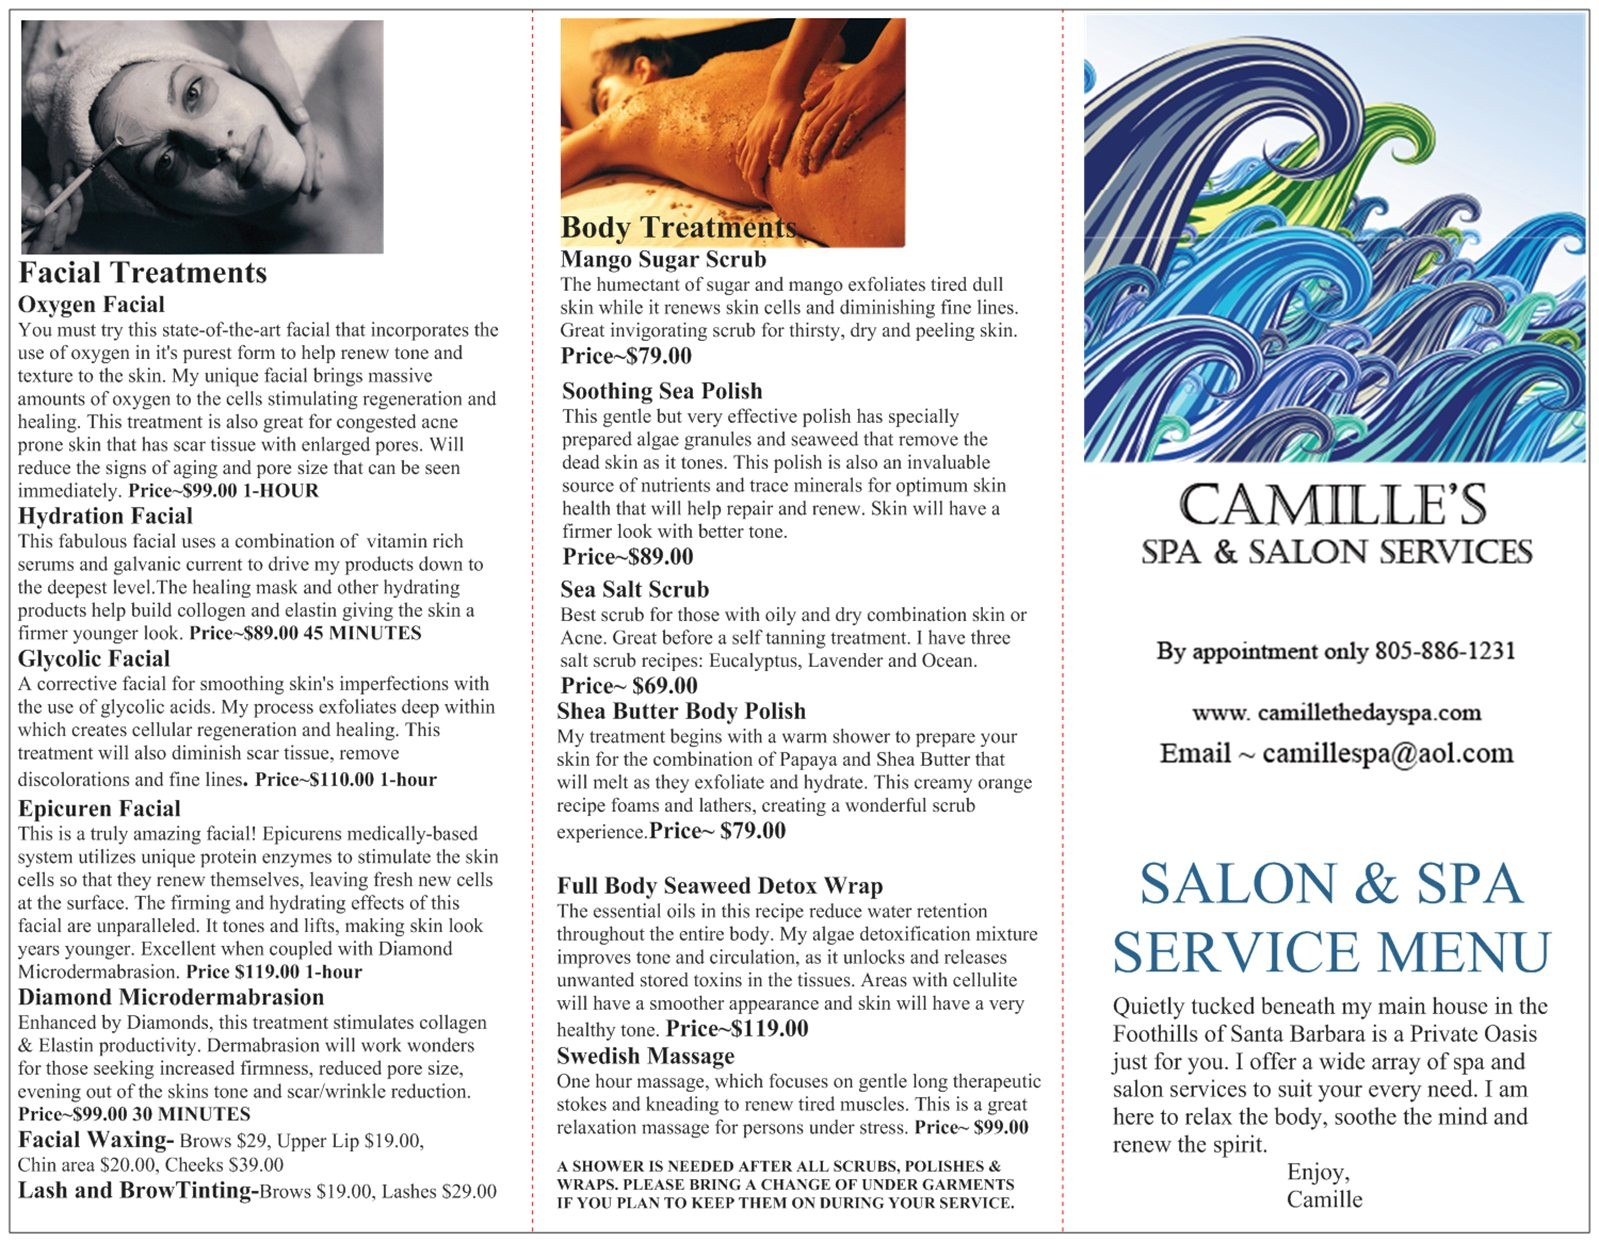 Gift certificates and menu of camille 39 s spa salon for About salon services